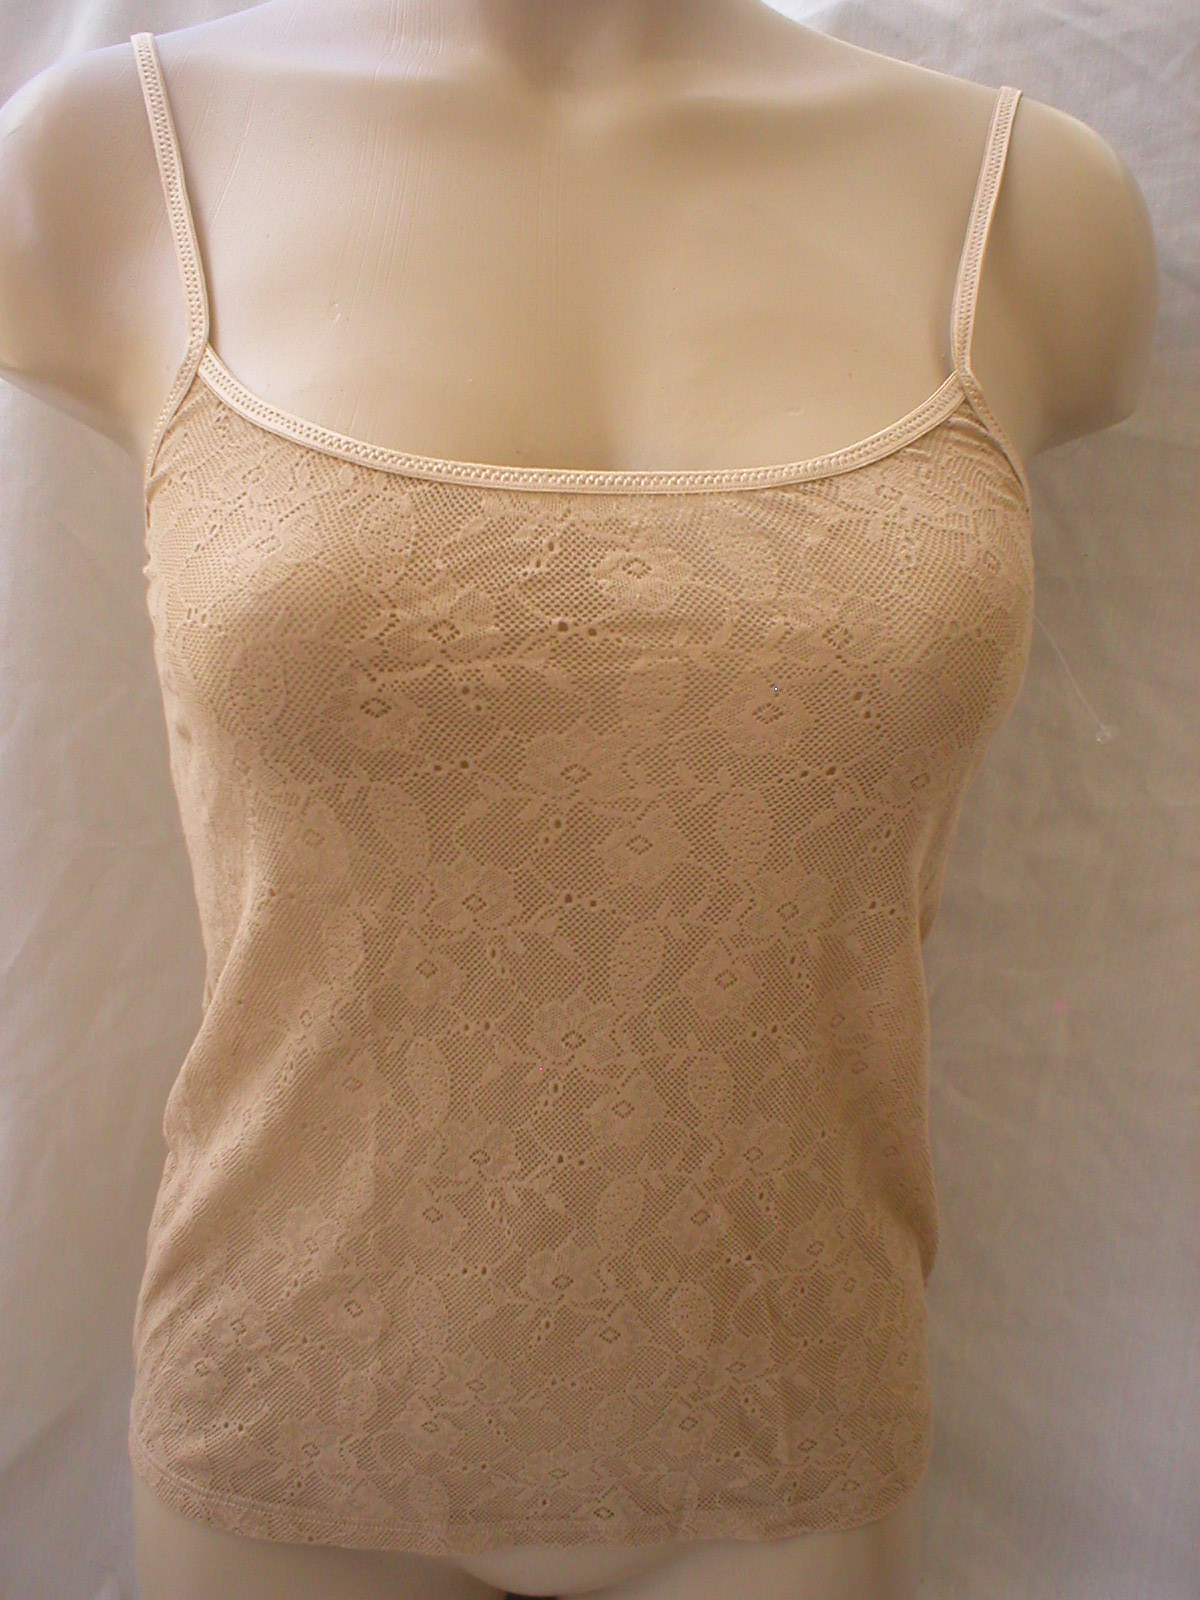 Calvin Klein Nude sheer lace camisole top F2858 NEW S SP